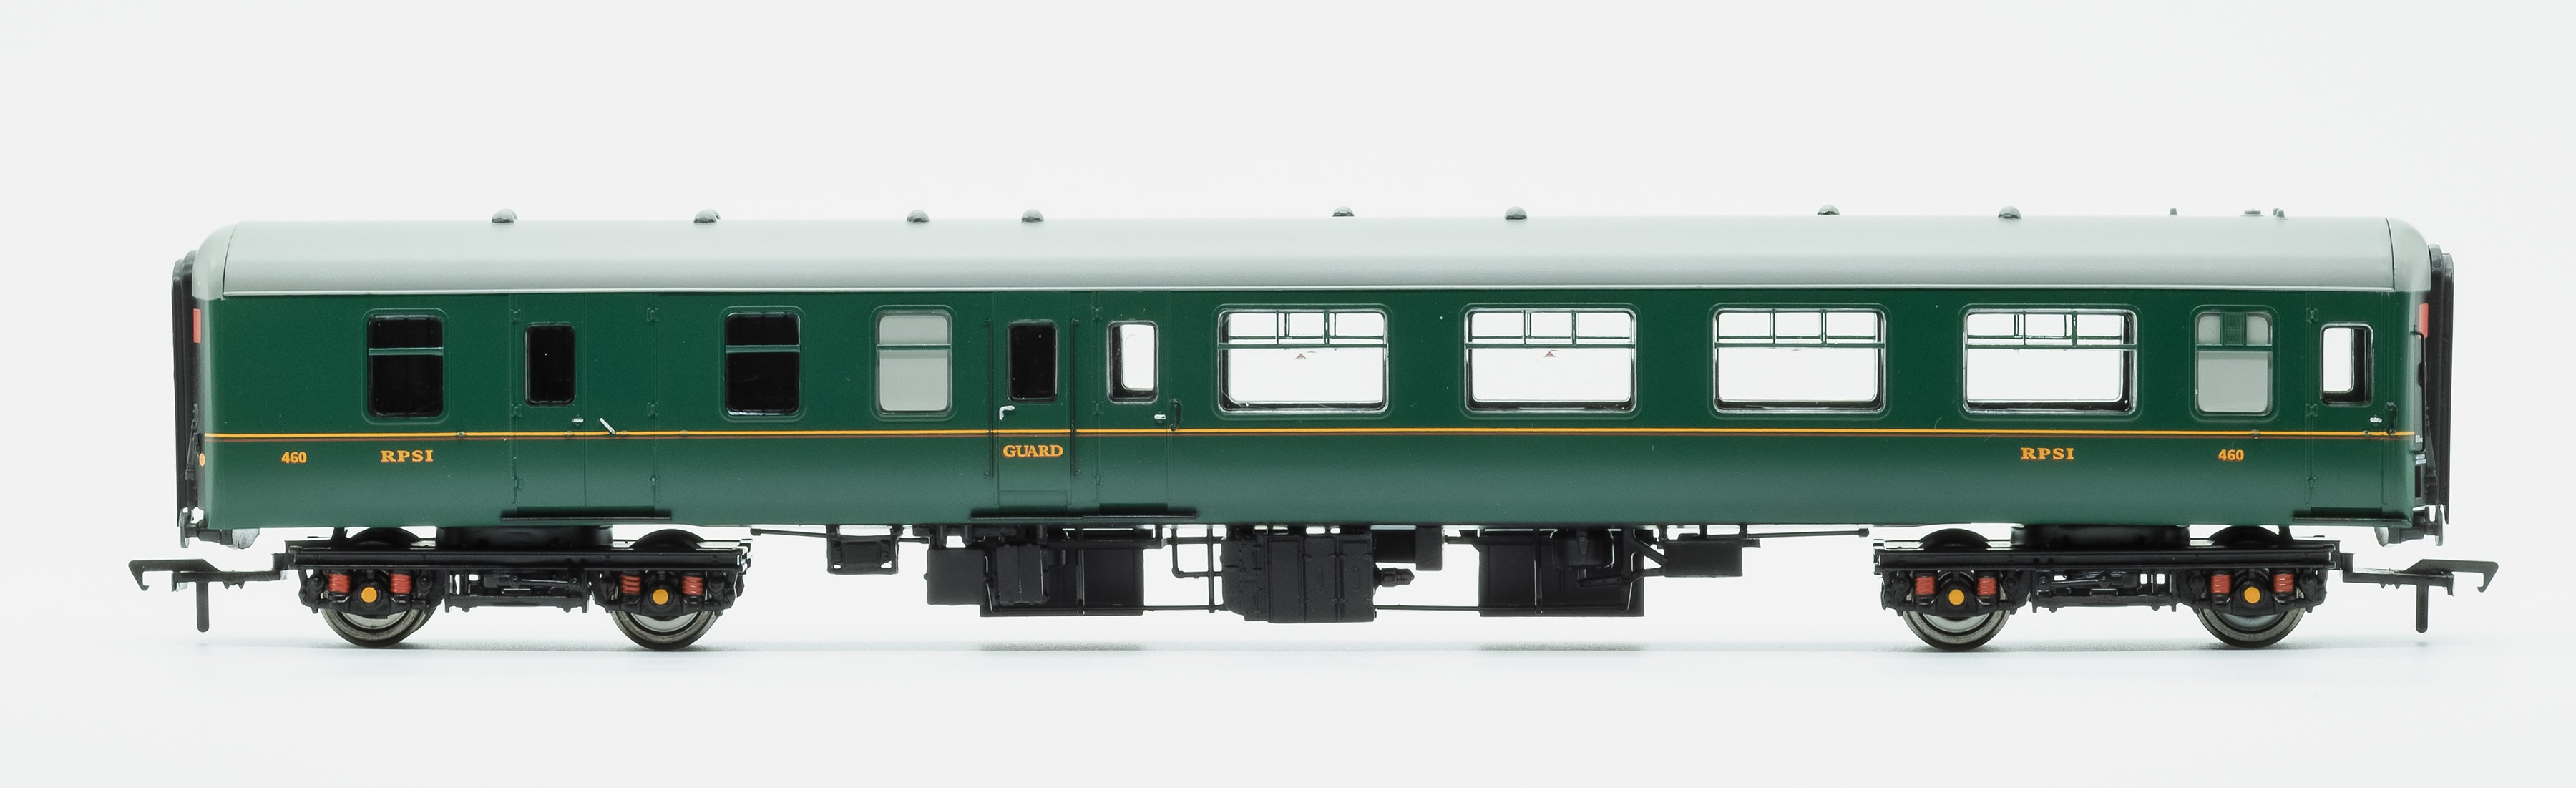 BSO Coach RPSI livery